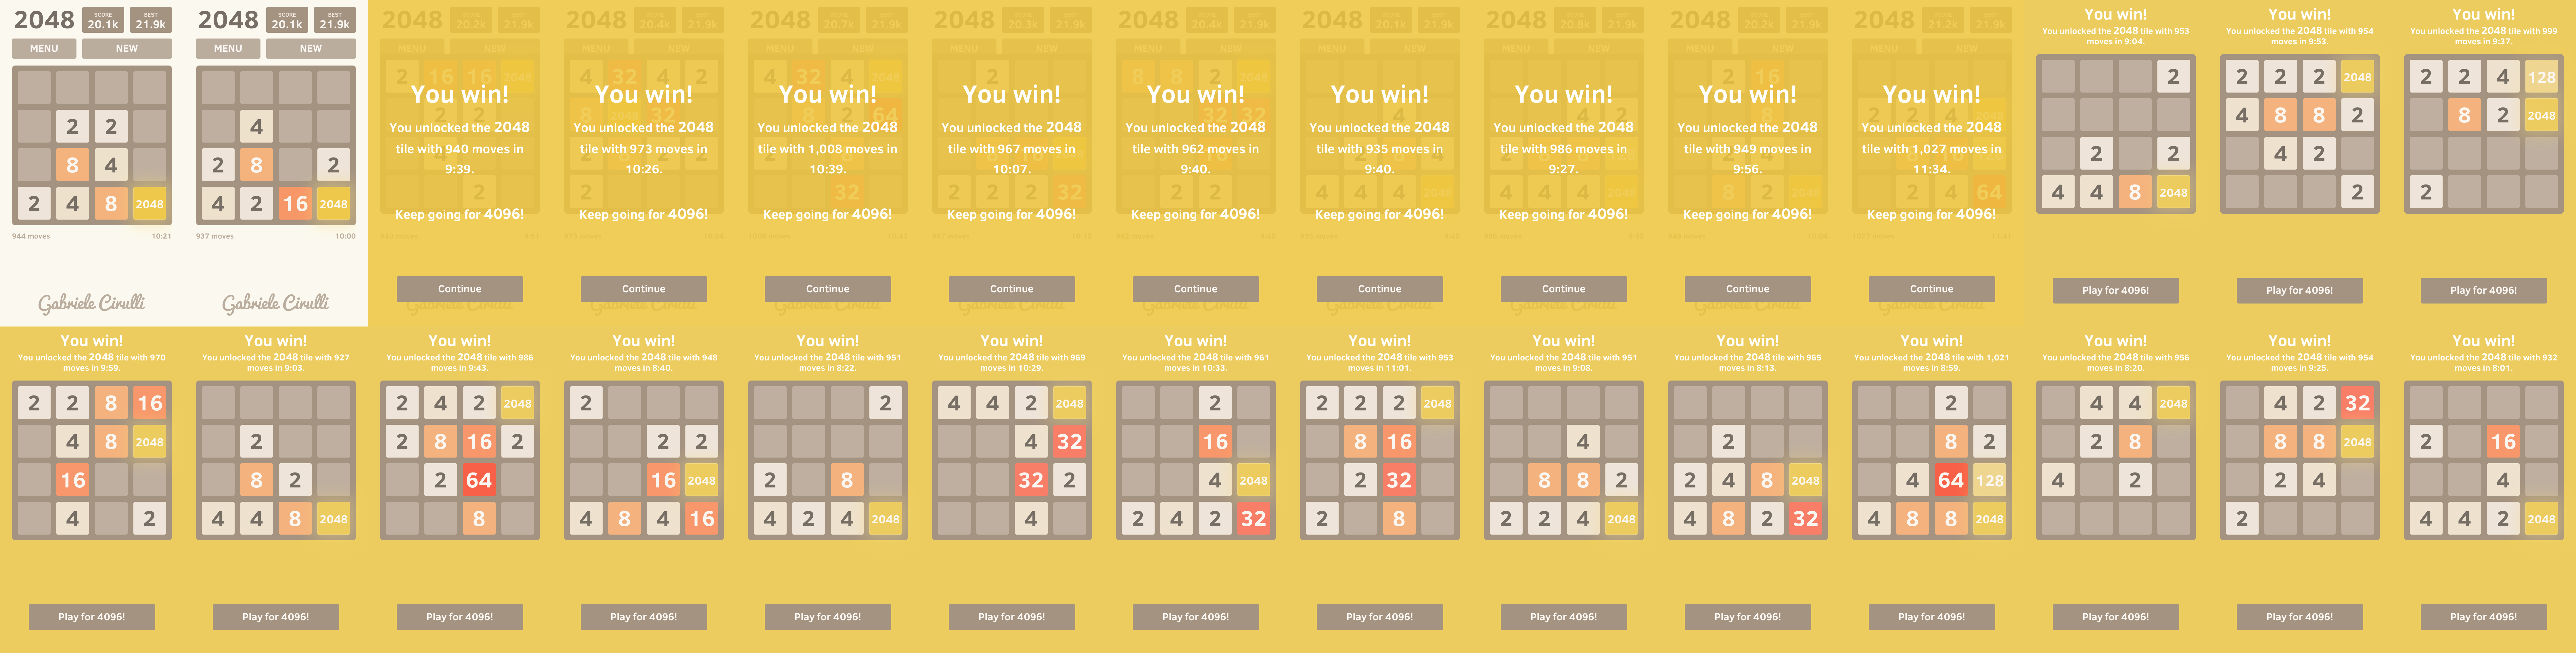 Montage of 28 winning games of 2048